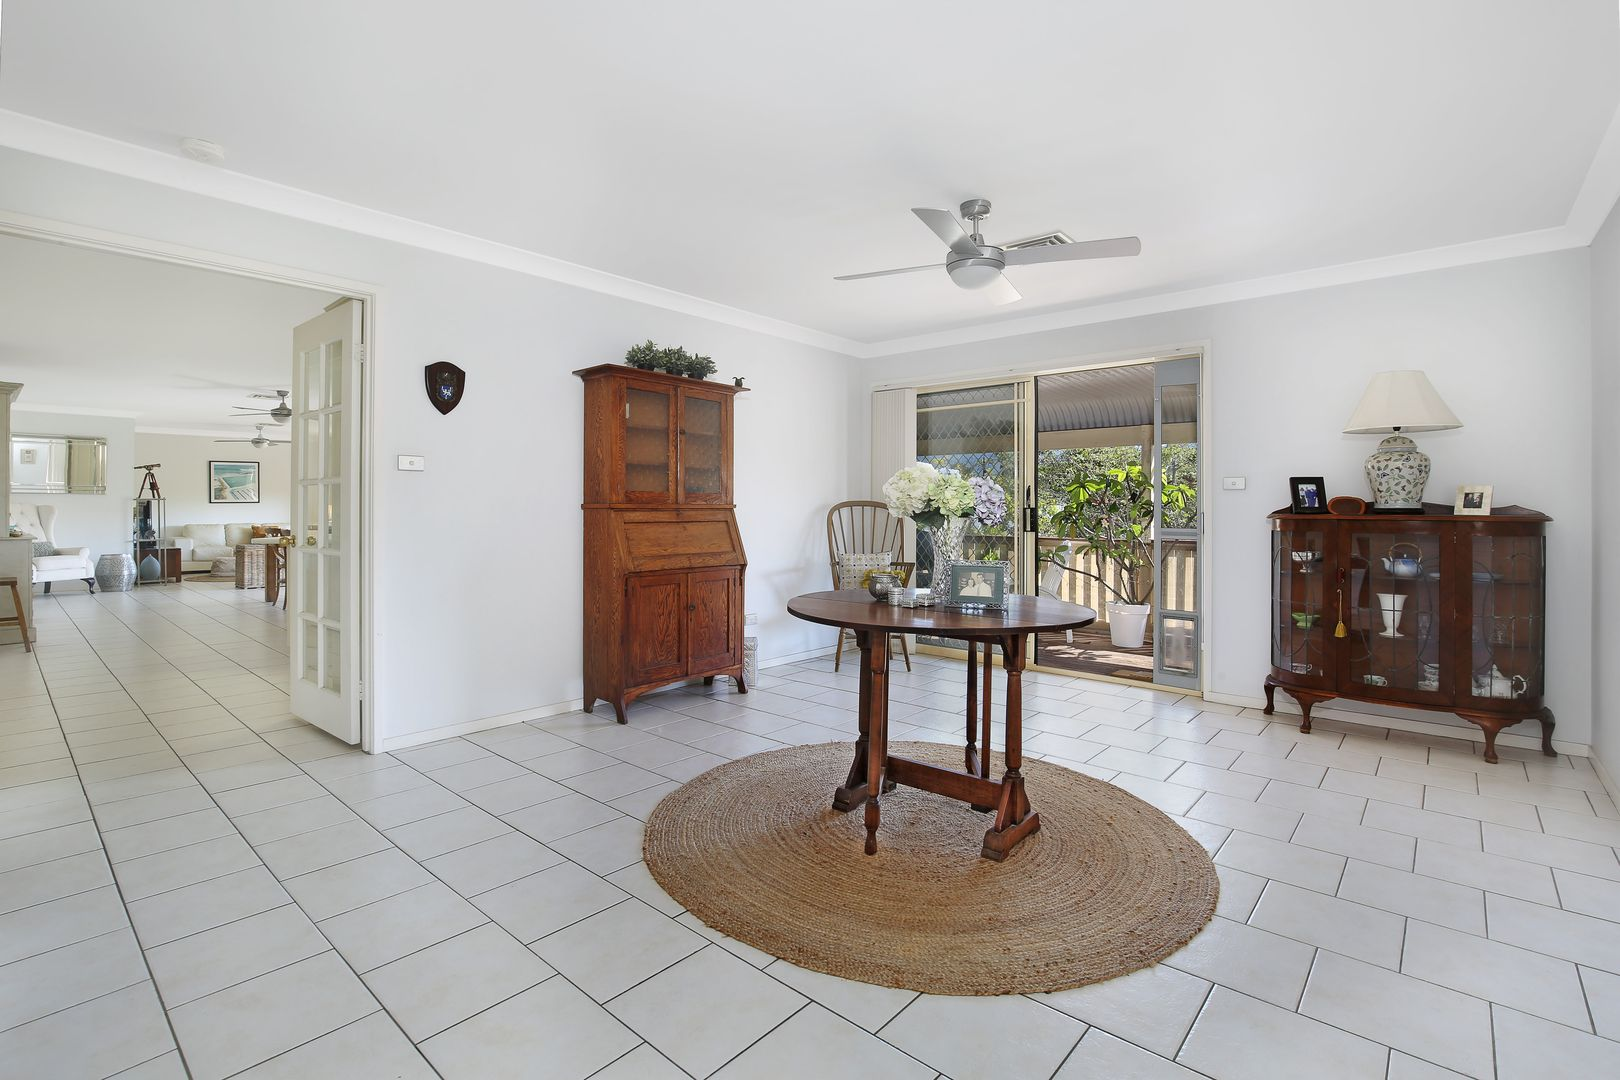 2/12 Northview Terrace, Figtree NSW 2525, Image 1